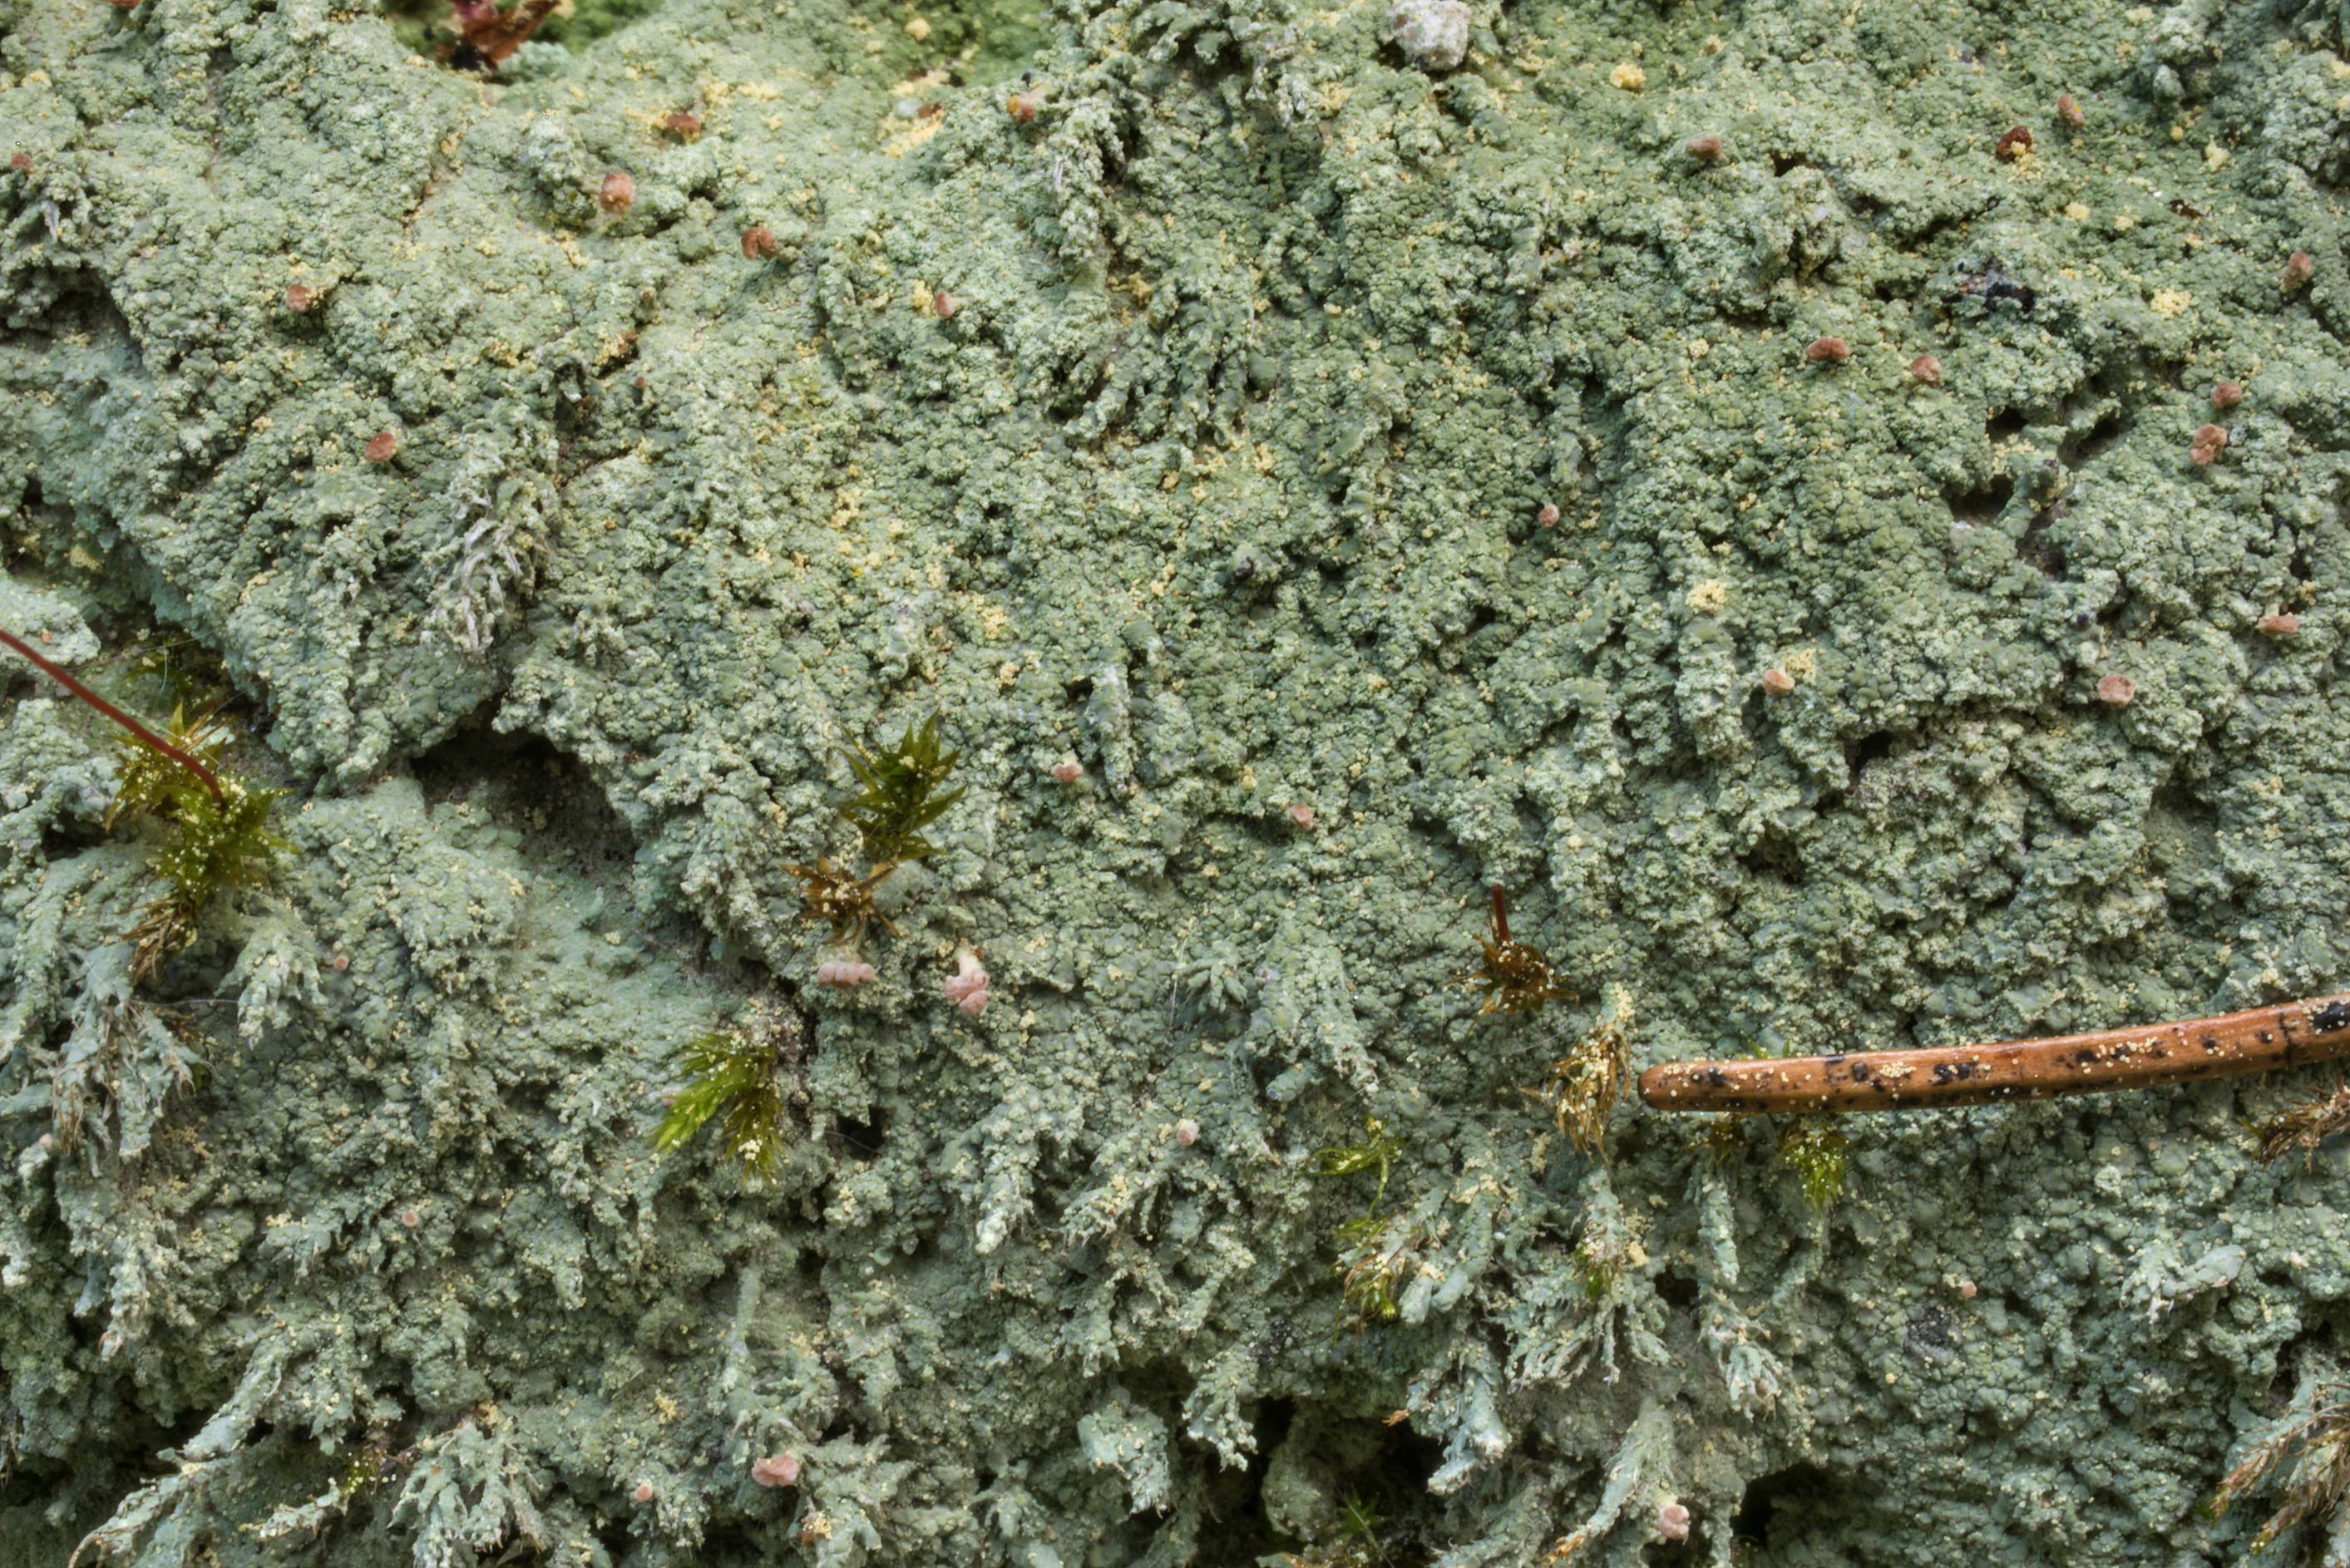 Green cover of brown beret lichen (Baeomyces...north-west from St.Petersburg. Russia